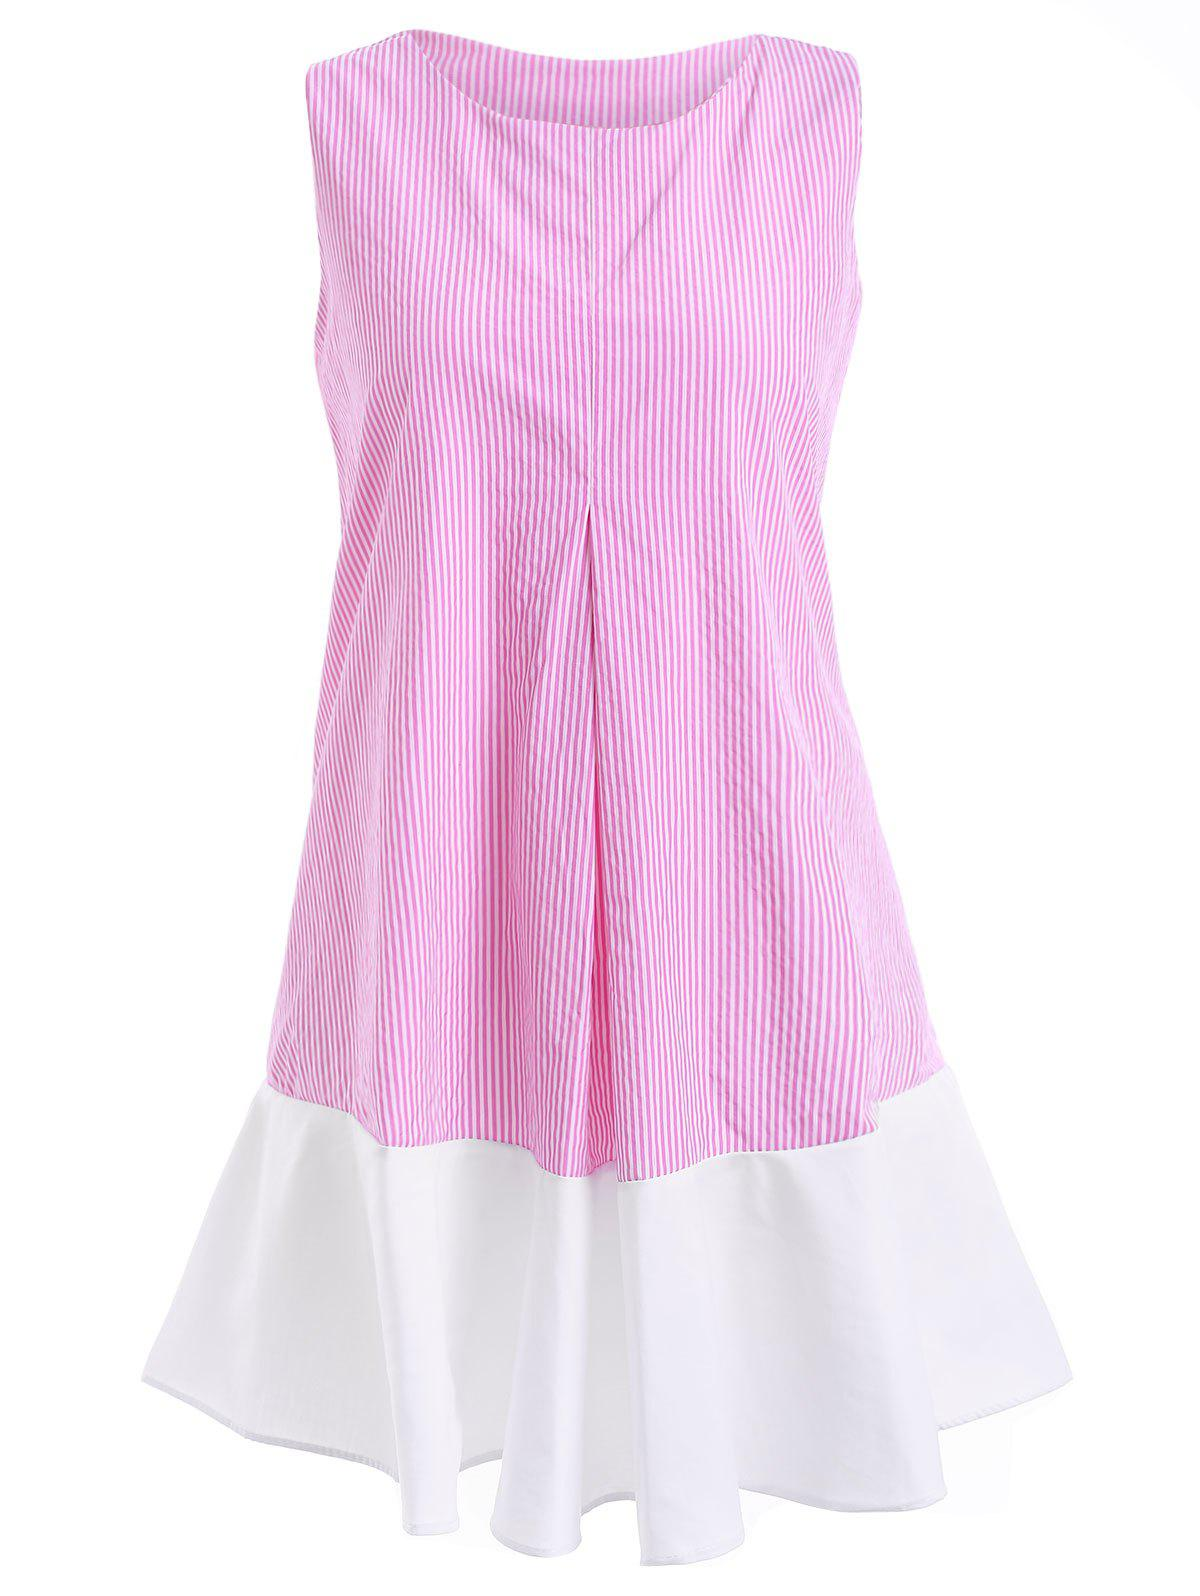 Chic Round Neck Sleeveless Pinstripe Flounce Women's Dress - PINK ONE SIZE(FIT SIZE XS TO M)